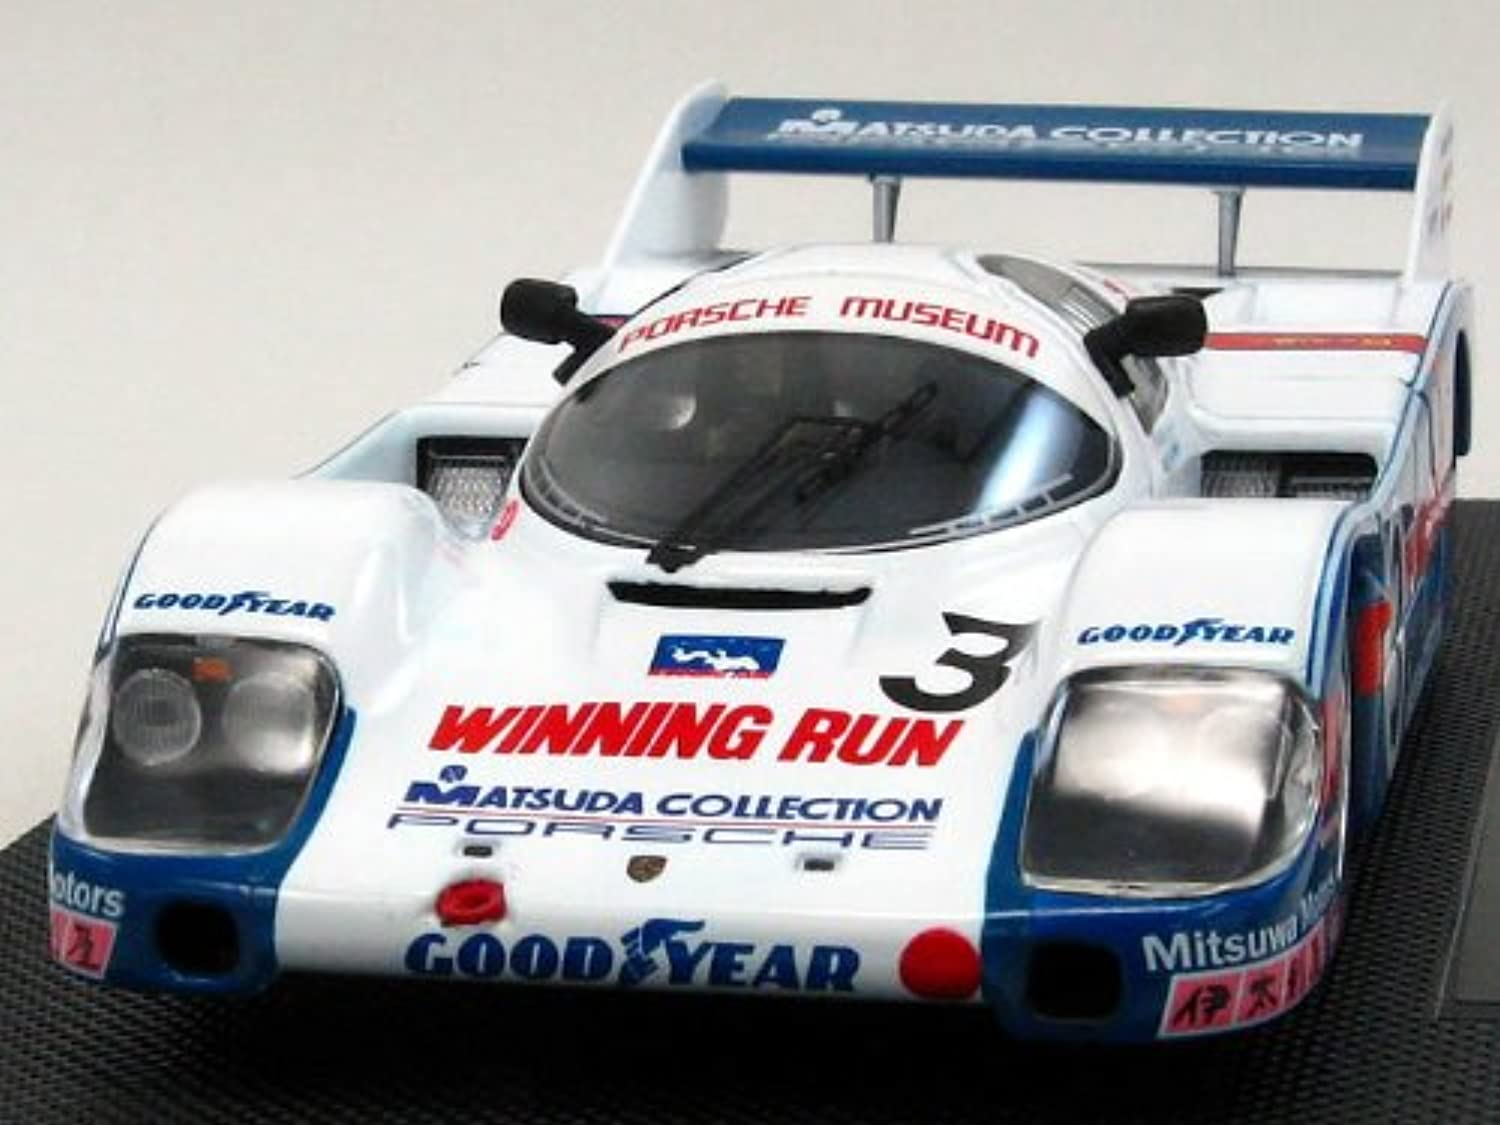 EBBRO 1 43 Mazda collection Porsche 956 winning run WEC Fuji 1983 White   blueee (japan import)